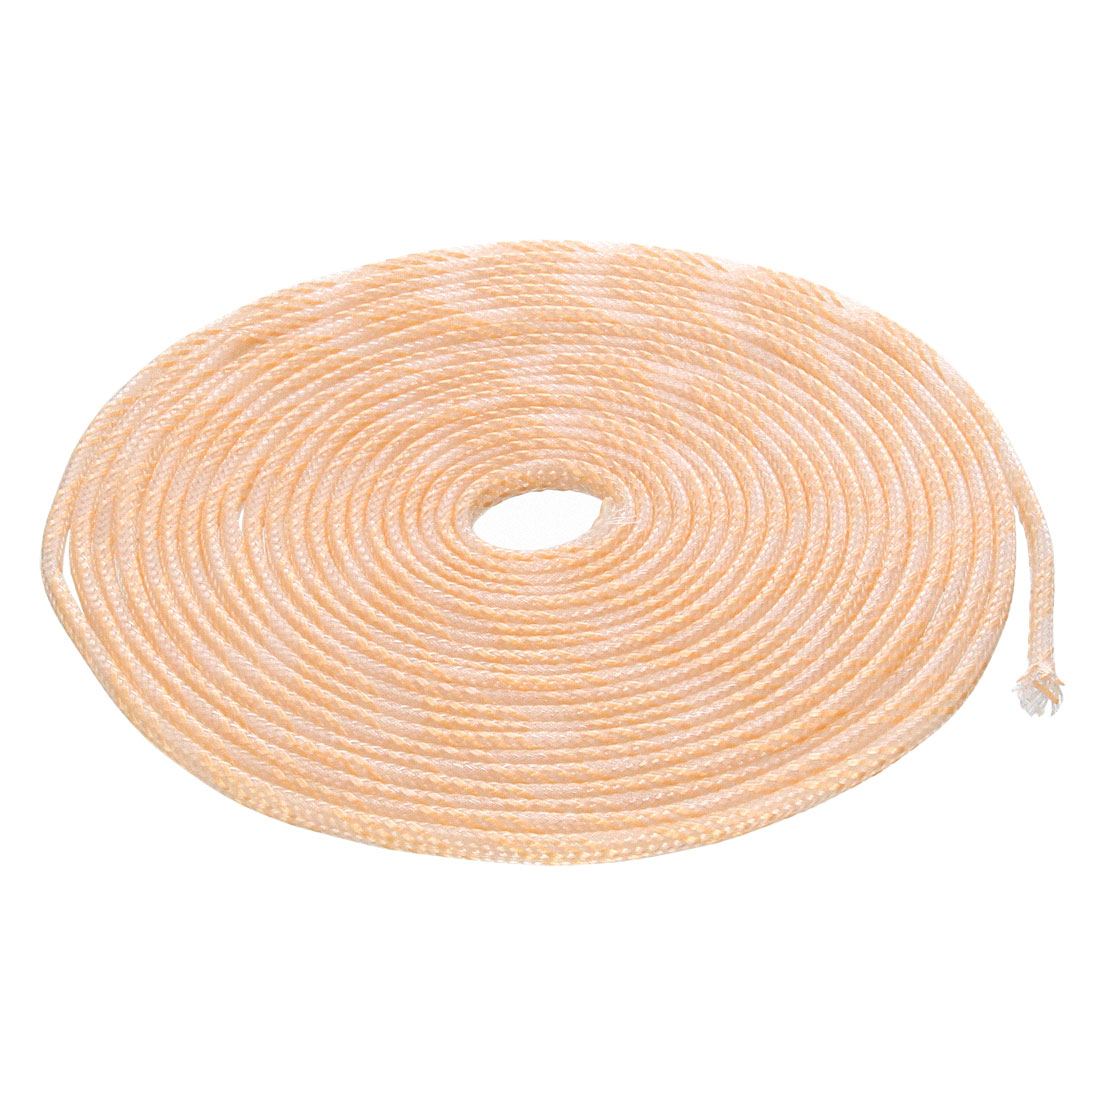 PET Braided Sleeving 16.4 Feet 5m Expandable Cable Wrap 3mm Diameter Wire Sheath Transparent Orange